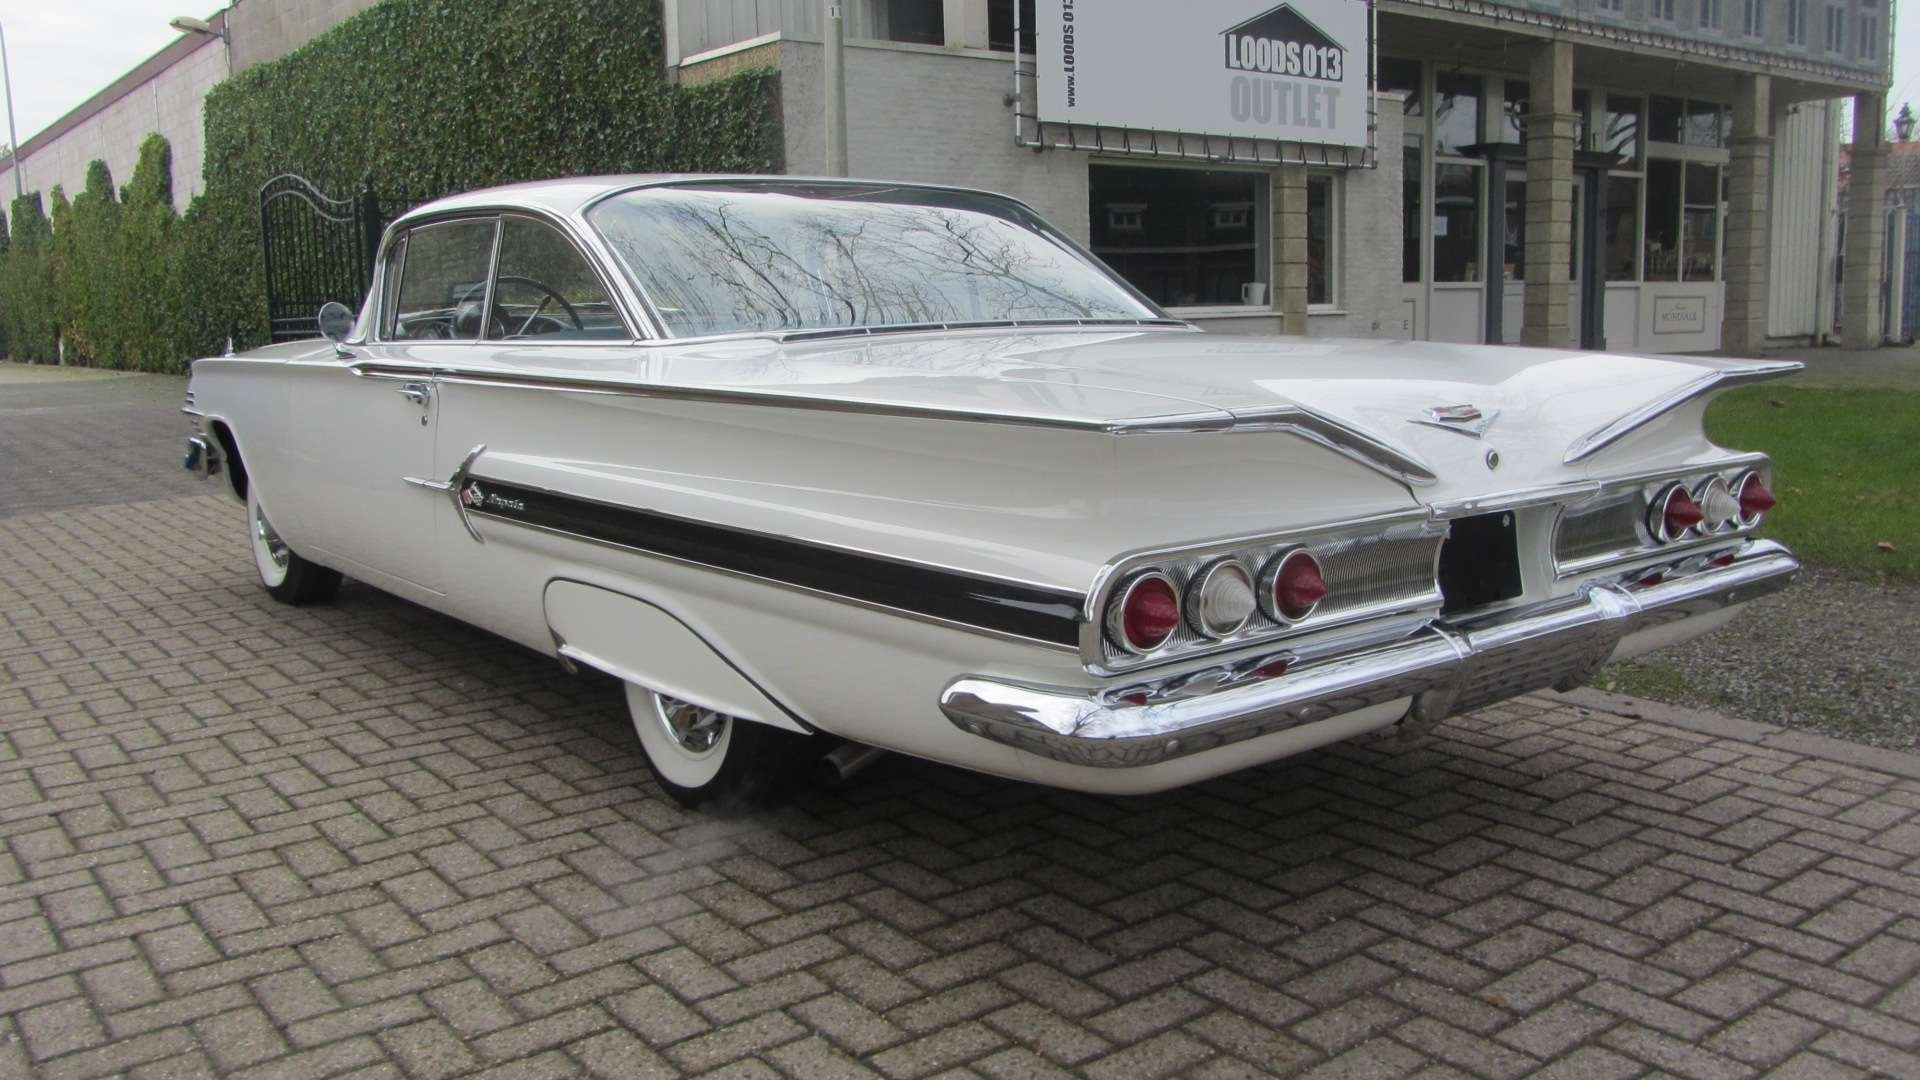 Chevrolet impala Coupe 1960 New Car & 50 USA Classics For Sale (picture 2 of 6)